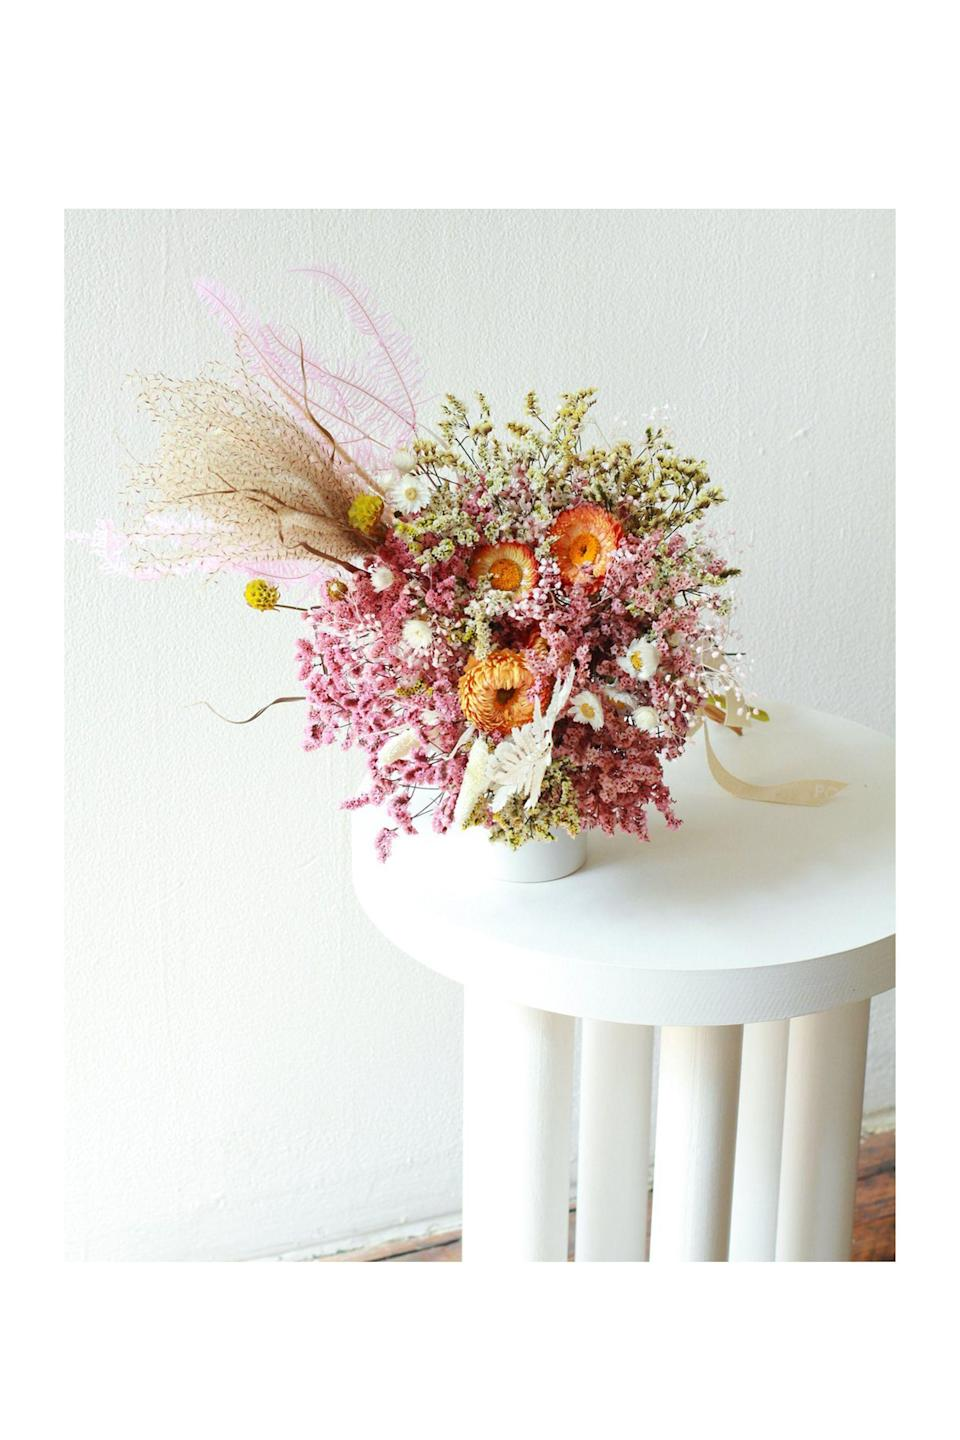 """<p><strong>Popupflorist </strong></p><p>popupflorist.com</p><p><strong>$50.00</strong></p><p><a href=""""https://popupflorist.com/products/feel-good-bouquet"""" rel=""""nofollow noopener"""" target=""""_blank"""" data-ylk=""""slk:Shop Now"""" class=""""link rapid-noclick-resp"""">Shop Now</a></p><p>Fusing fashion and florals together, <a href=""""https://thepopupflorist.com/"""" rel=""""nofollow noopener"""" target=""""_blank"""" data-ylk=""""slk:Popupflorist"""" class=""""link rapid-noclick-resp"""">Popupflorist</a> is the place to go for the unexpected textures and captivating color palettes. With an accessible price point, whimsical point of view, and eco-conscious mindset, these floral arrangements are sure to put a smile on your face.</p>"""